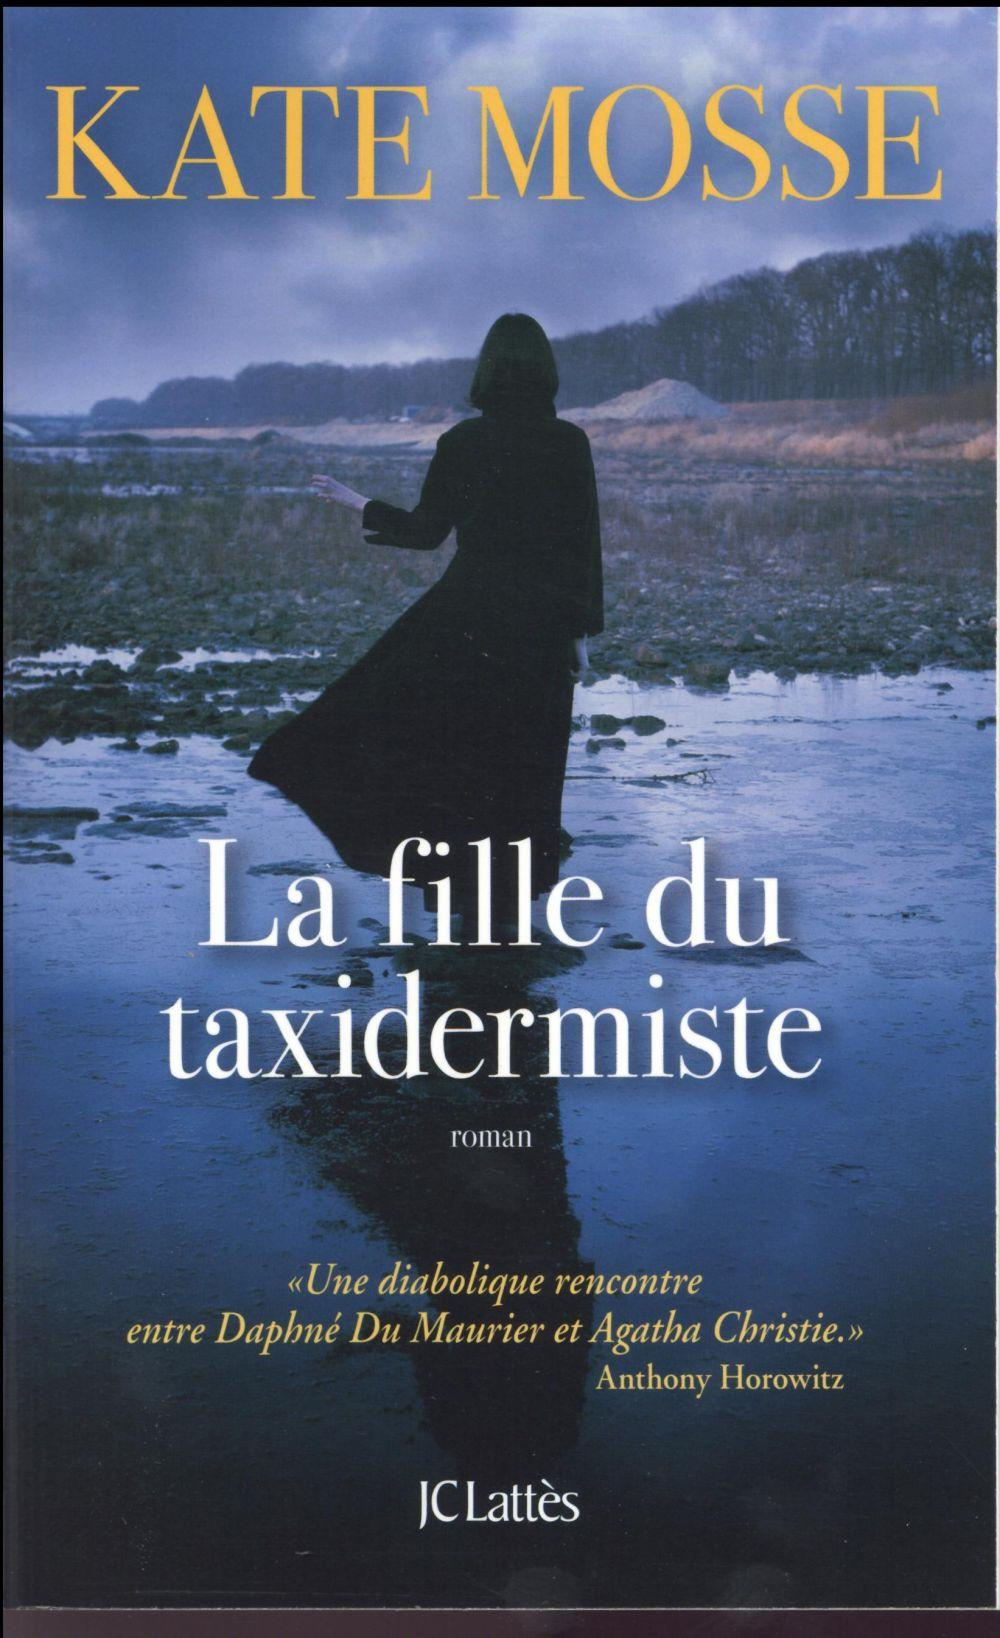 Vente Livre :                                    La fille du taxidermiste                                      - Kate Mosse